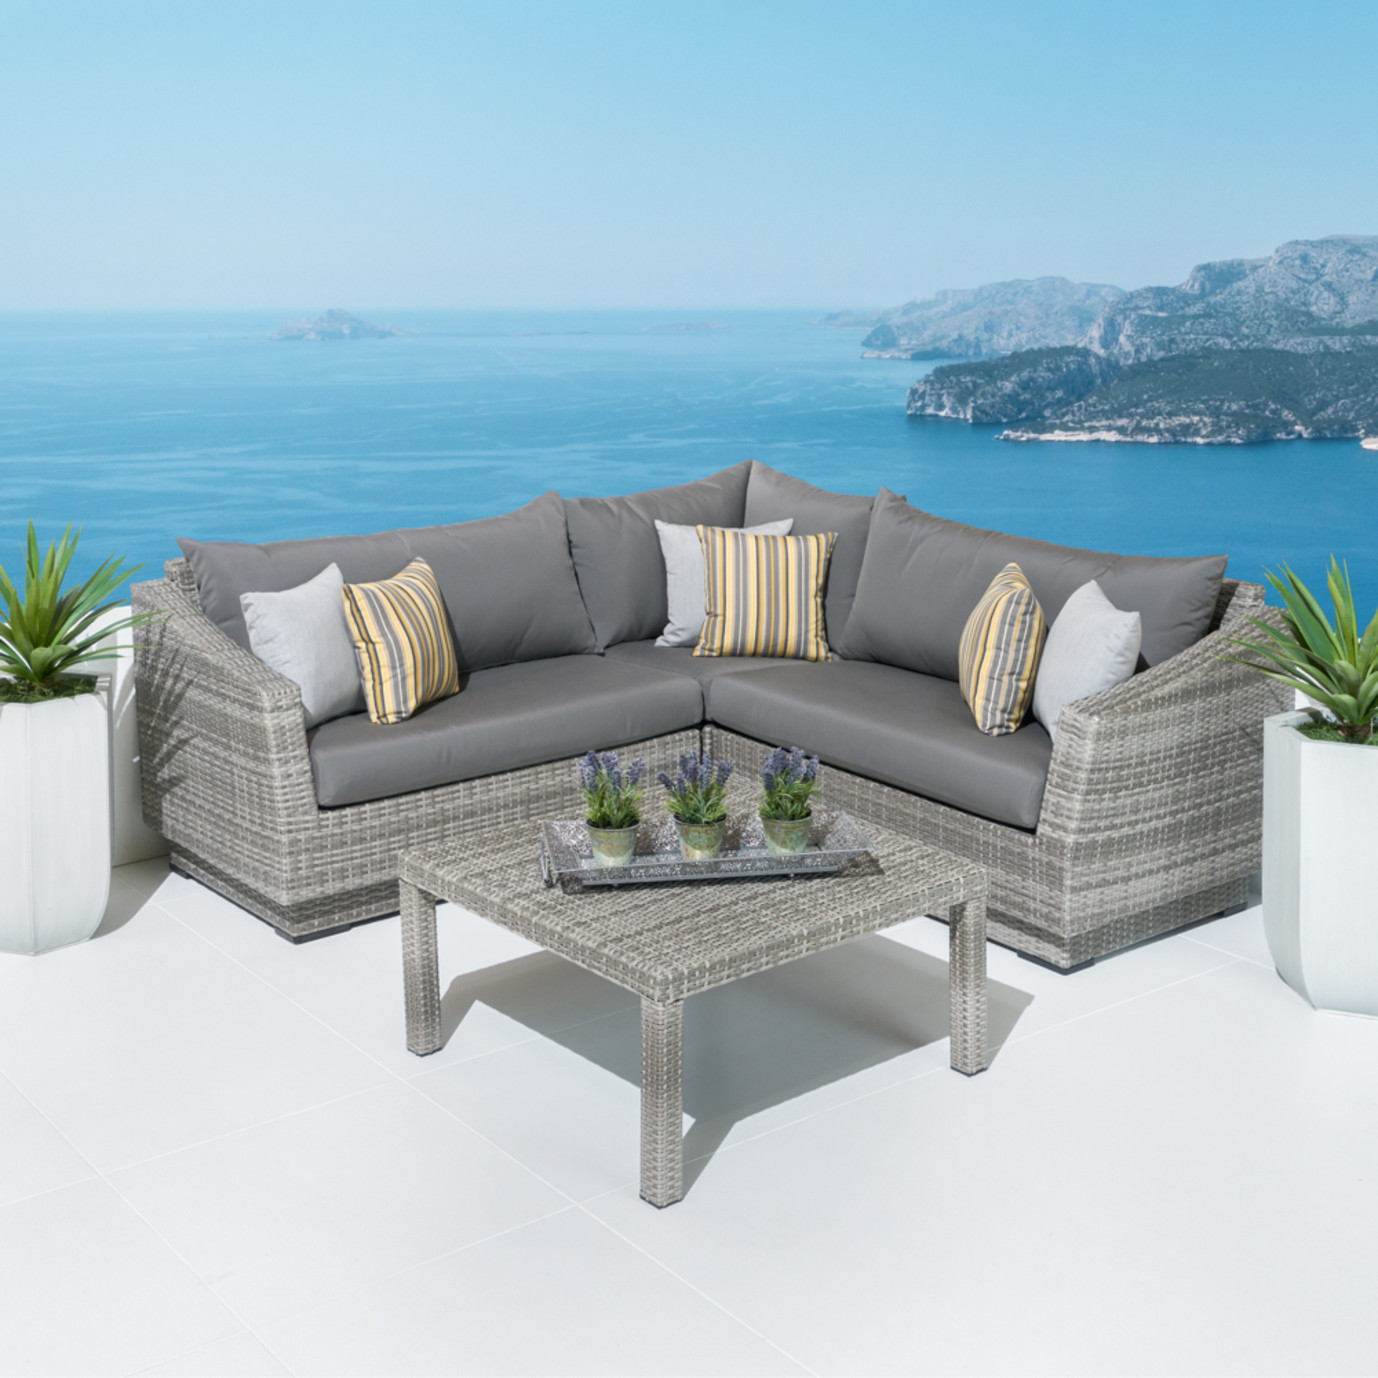 Cannes™ 4 Piece Sectional & Table - Charcoal Gray